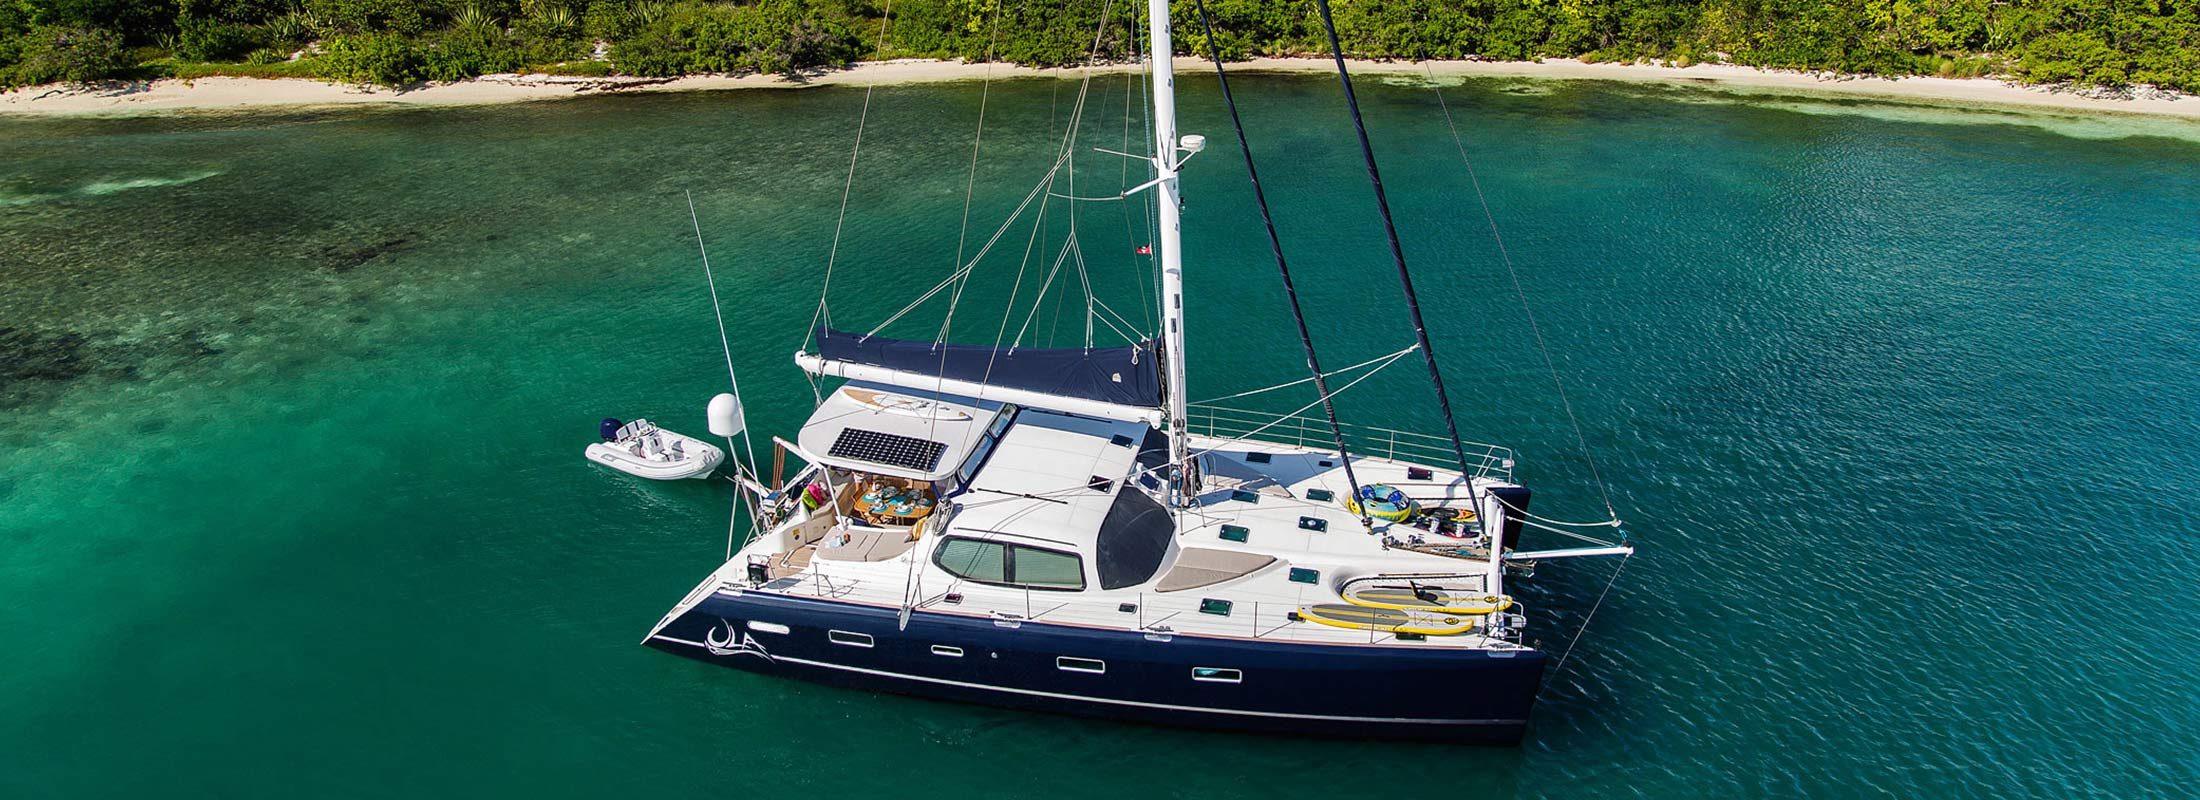 Ula Sailing Yacht for Charter Caribbean Sea slider 2